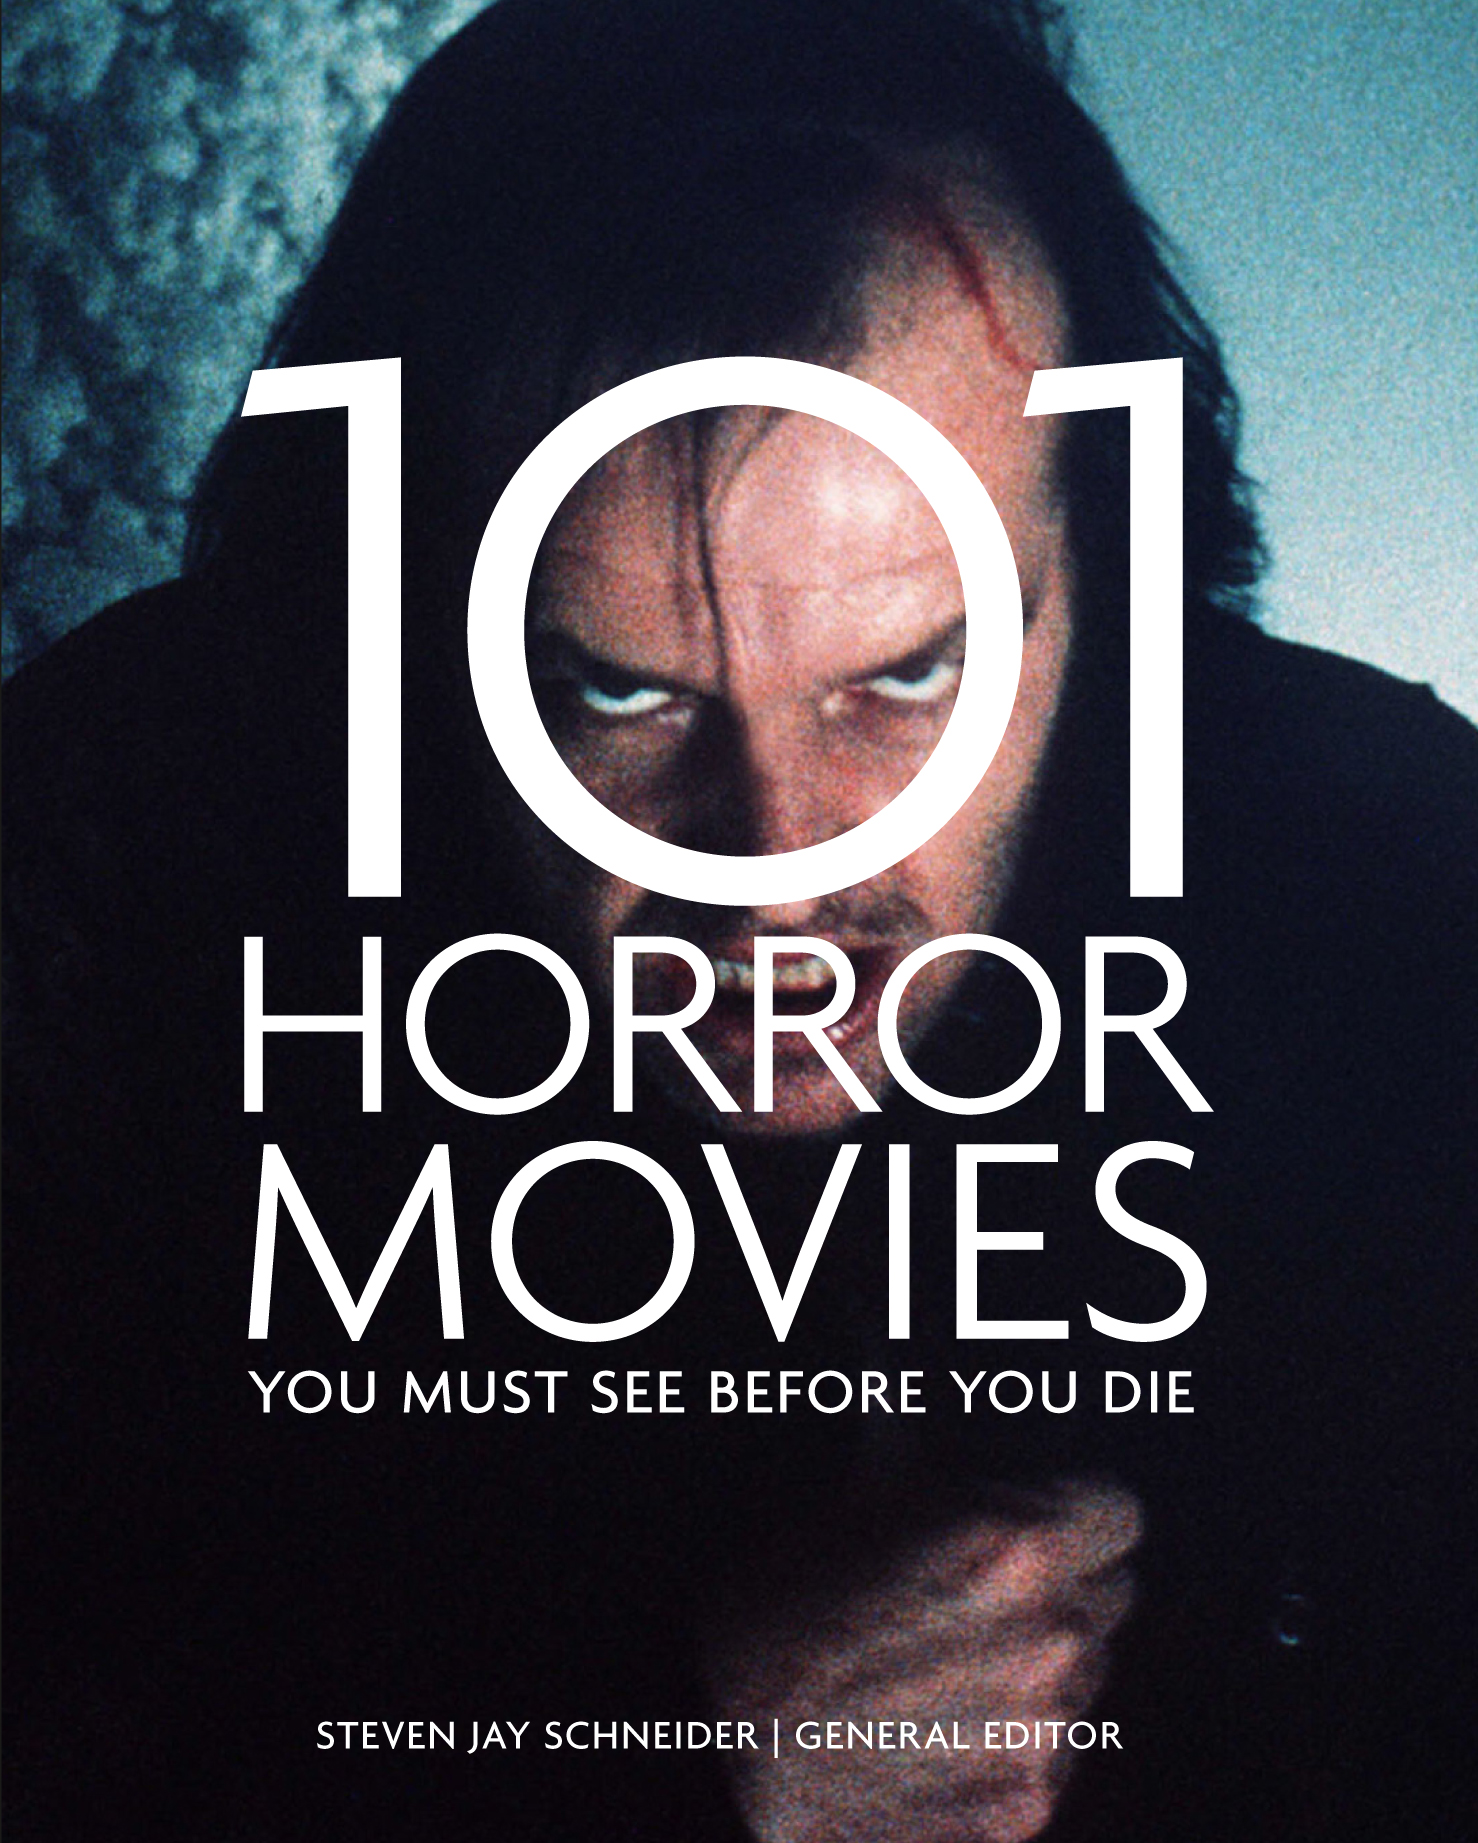 10-101-horror-mivies-you-must-see-before-you-die-fiktion-og-kultur-plusbog-dk-film-bog